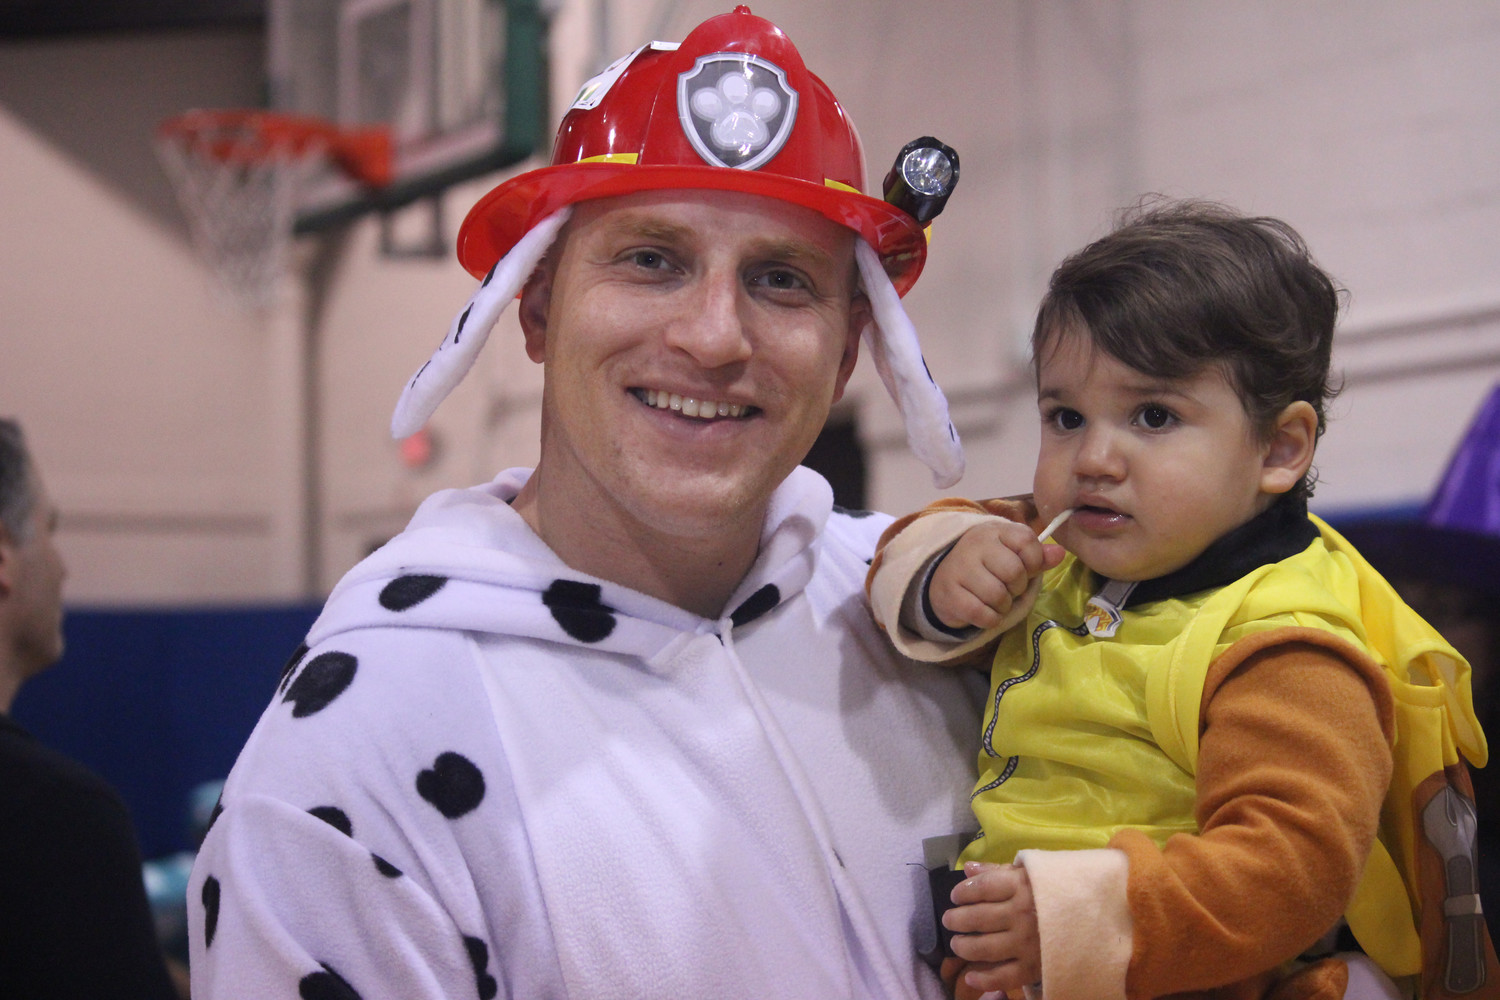 Jeff Flashner and his son, Nathan, 20 months old, got into the Halloween spirit.